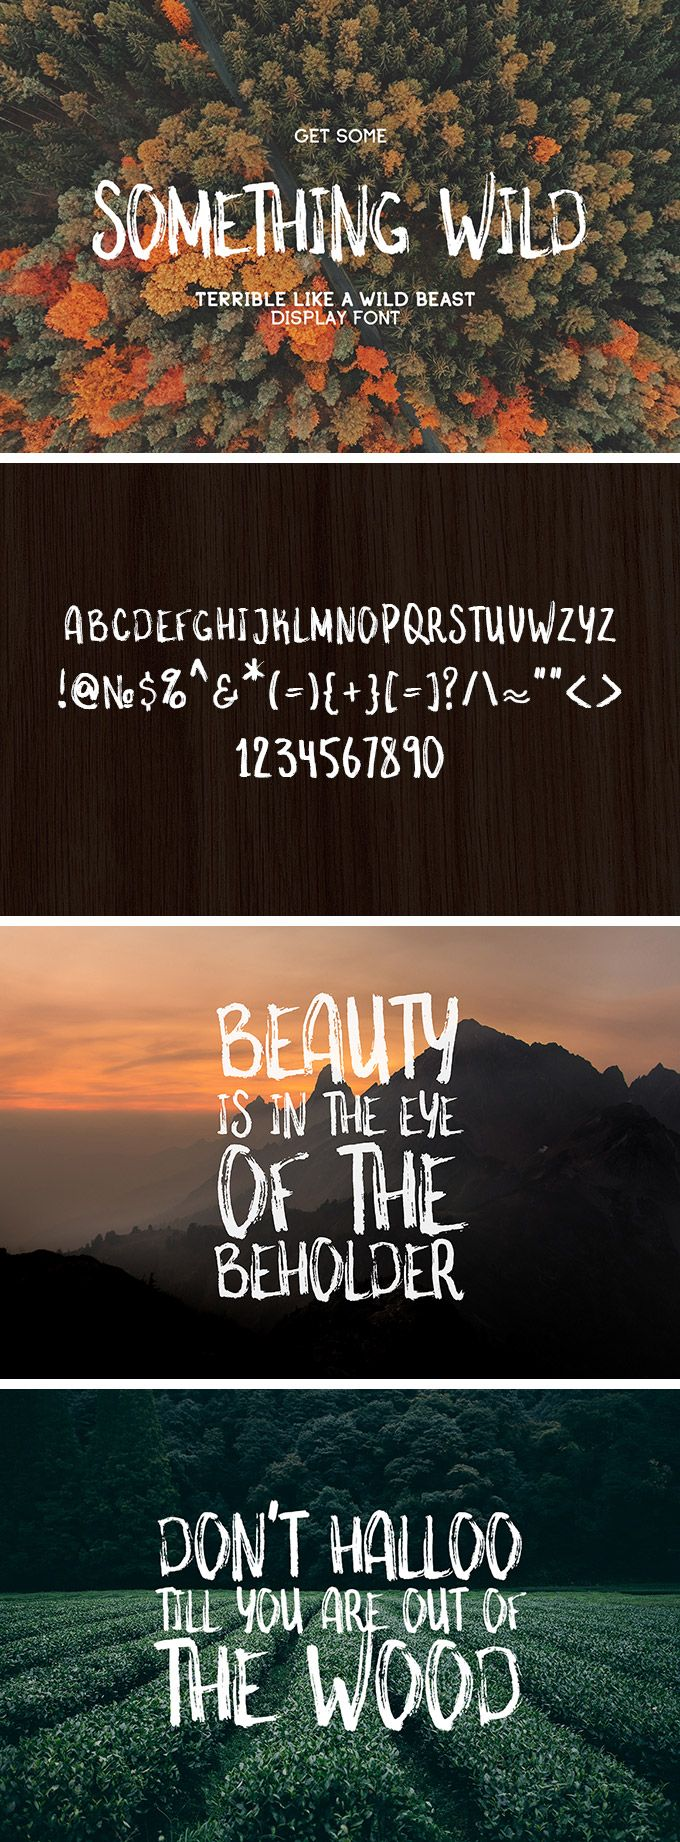 Something Wild Free Font. The font is royalty free for use in both personal and commercial projects.